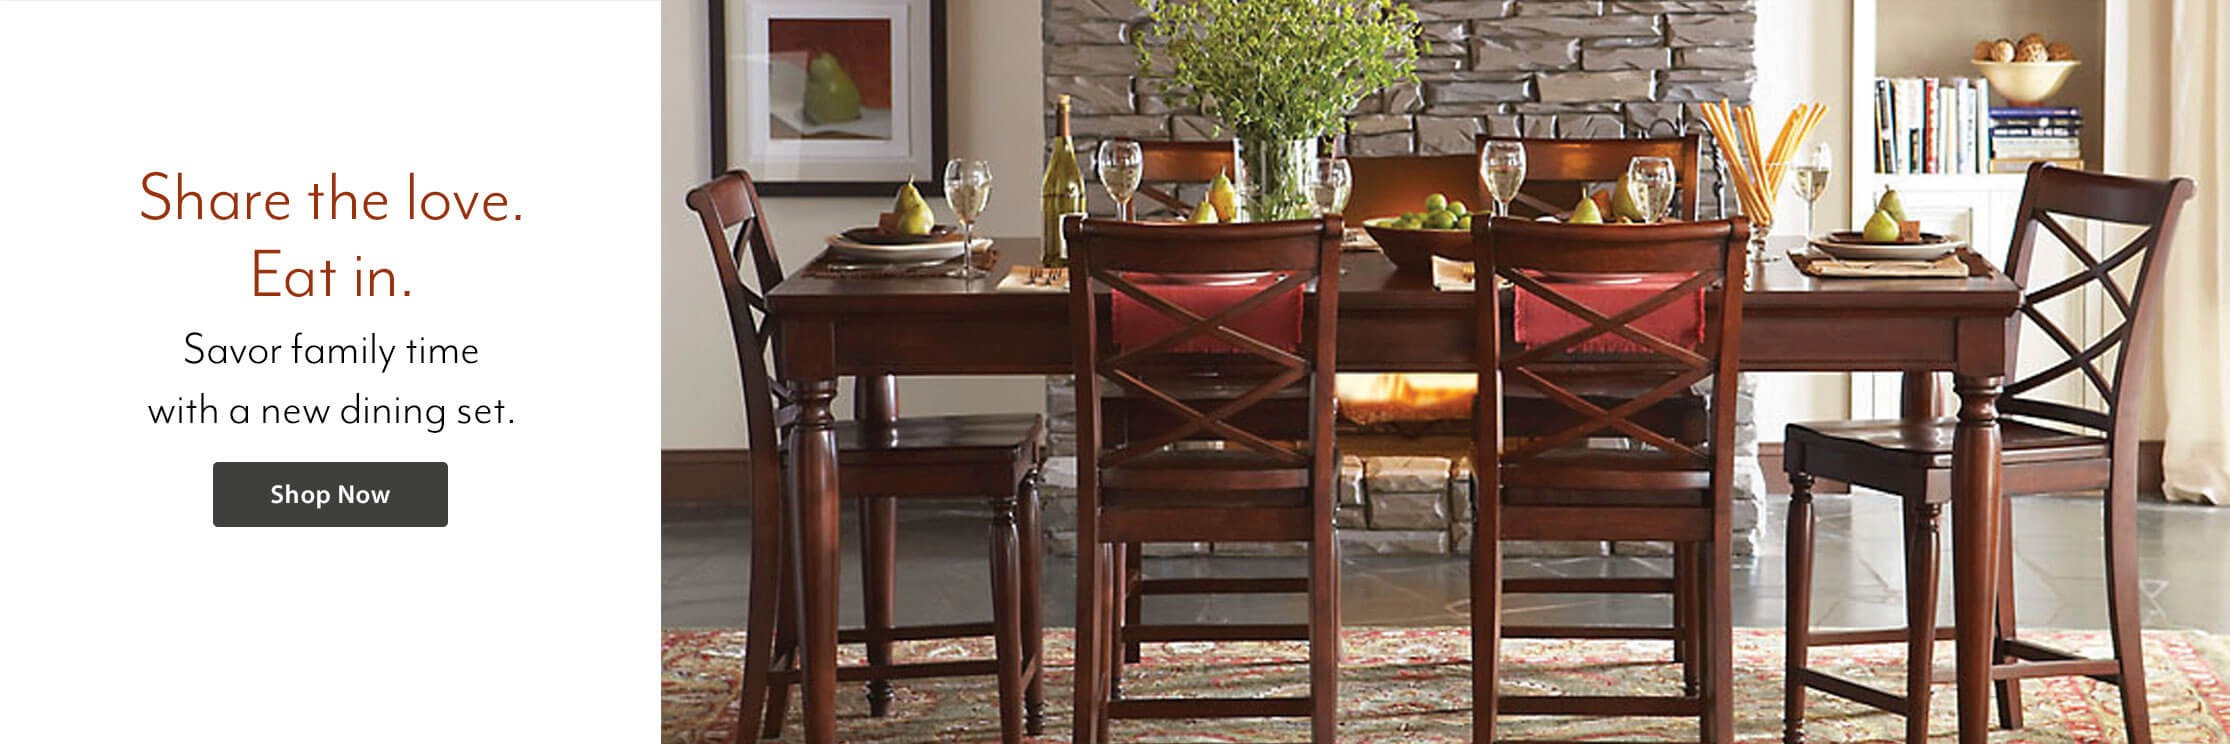 Family Dining - Dining for the Holidays